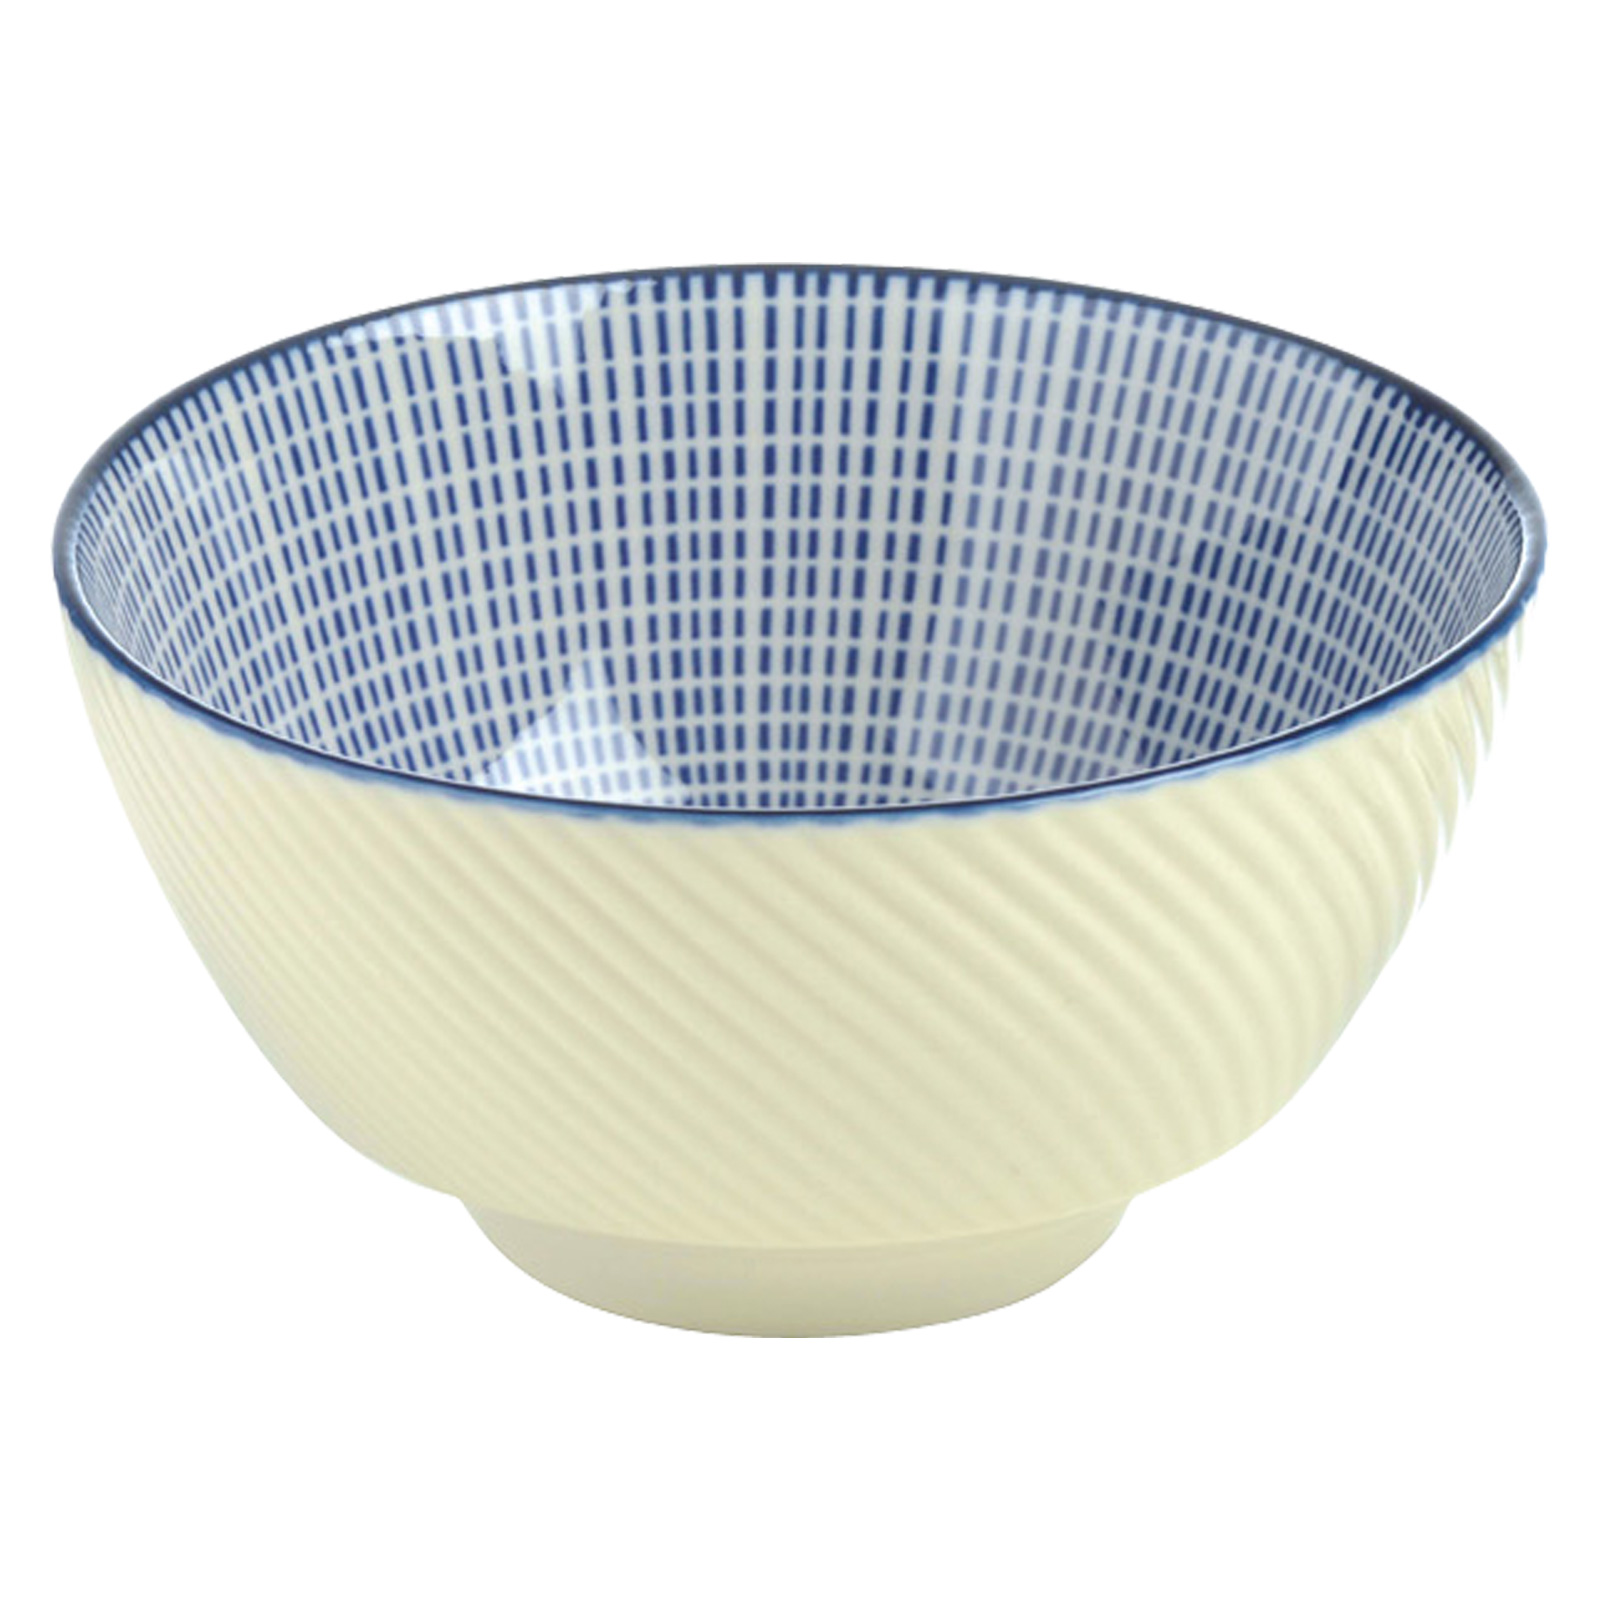 Set of 4 Tao Rice Bowls Blue by BIA